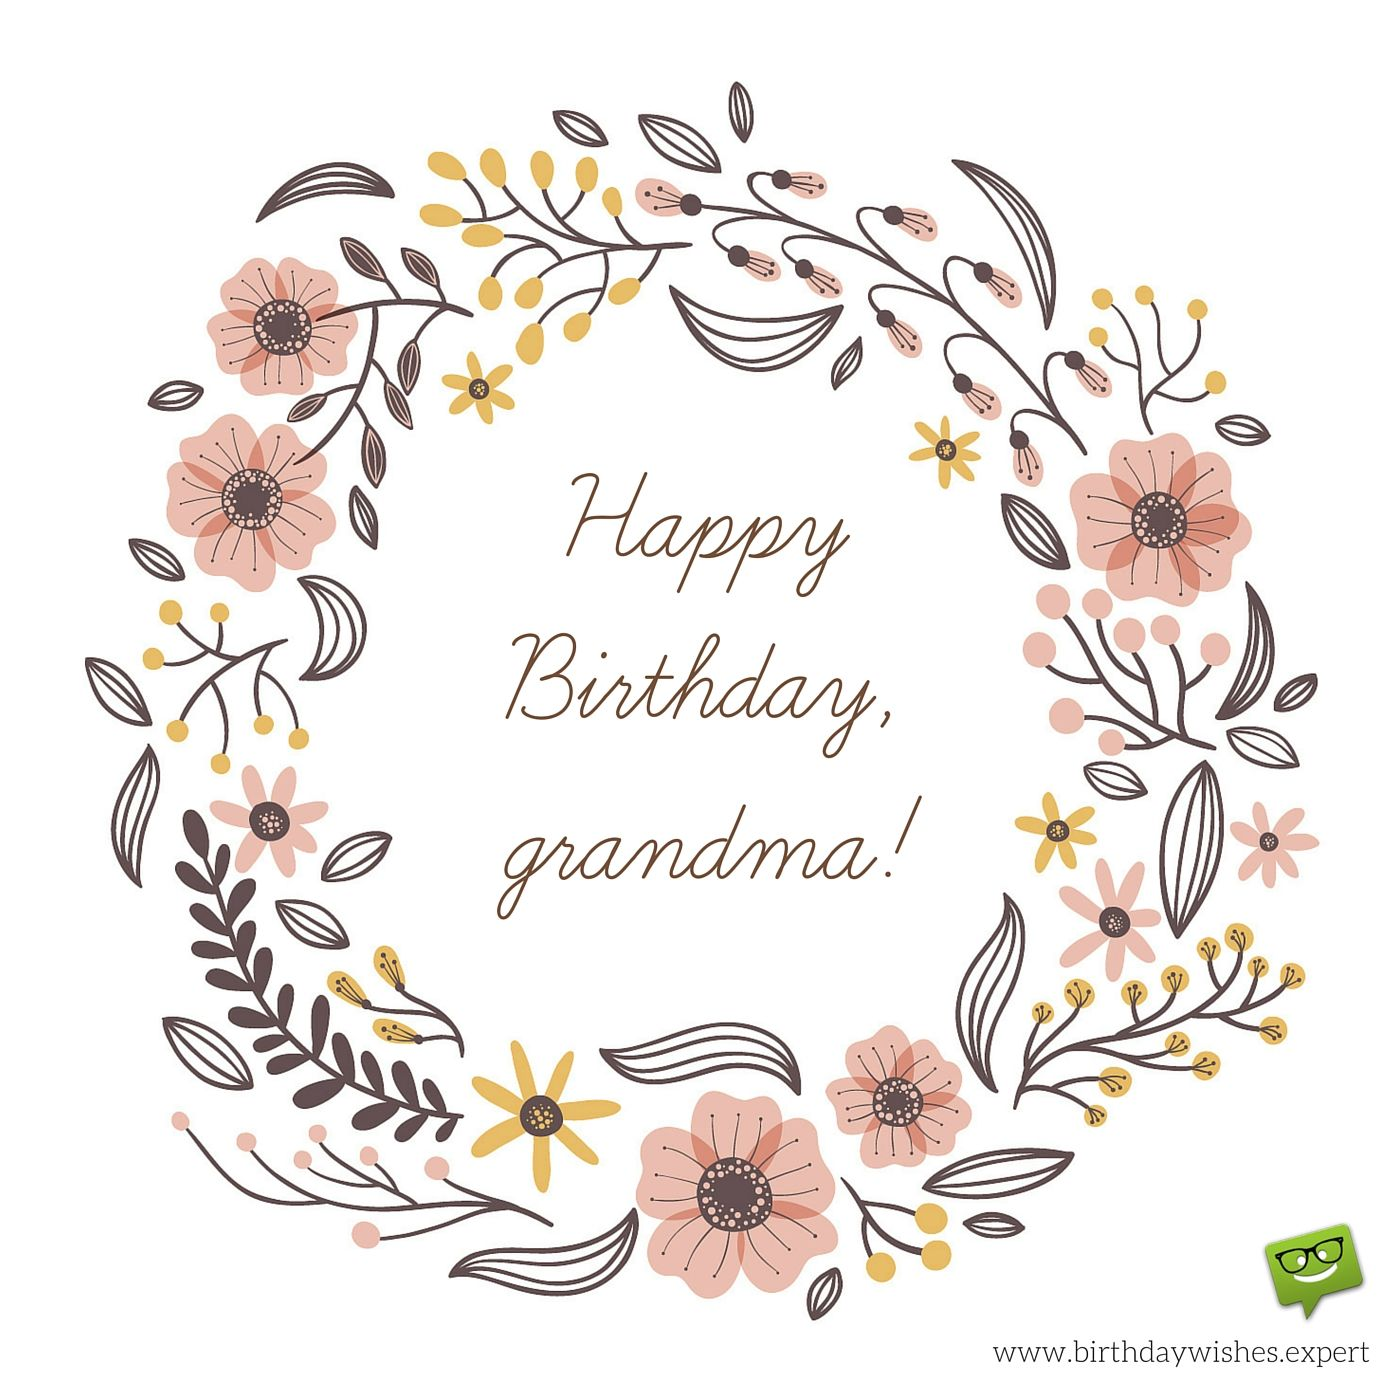 Happy Birthday Grandma image with hand drawn flowers